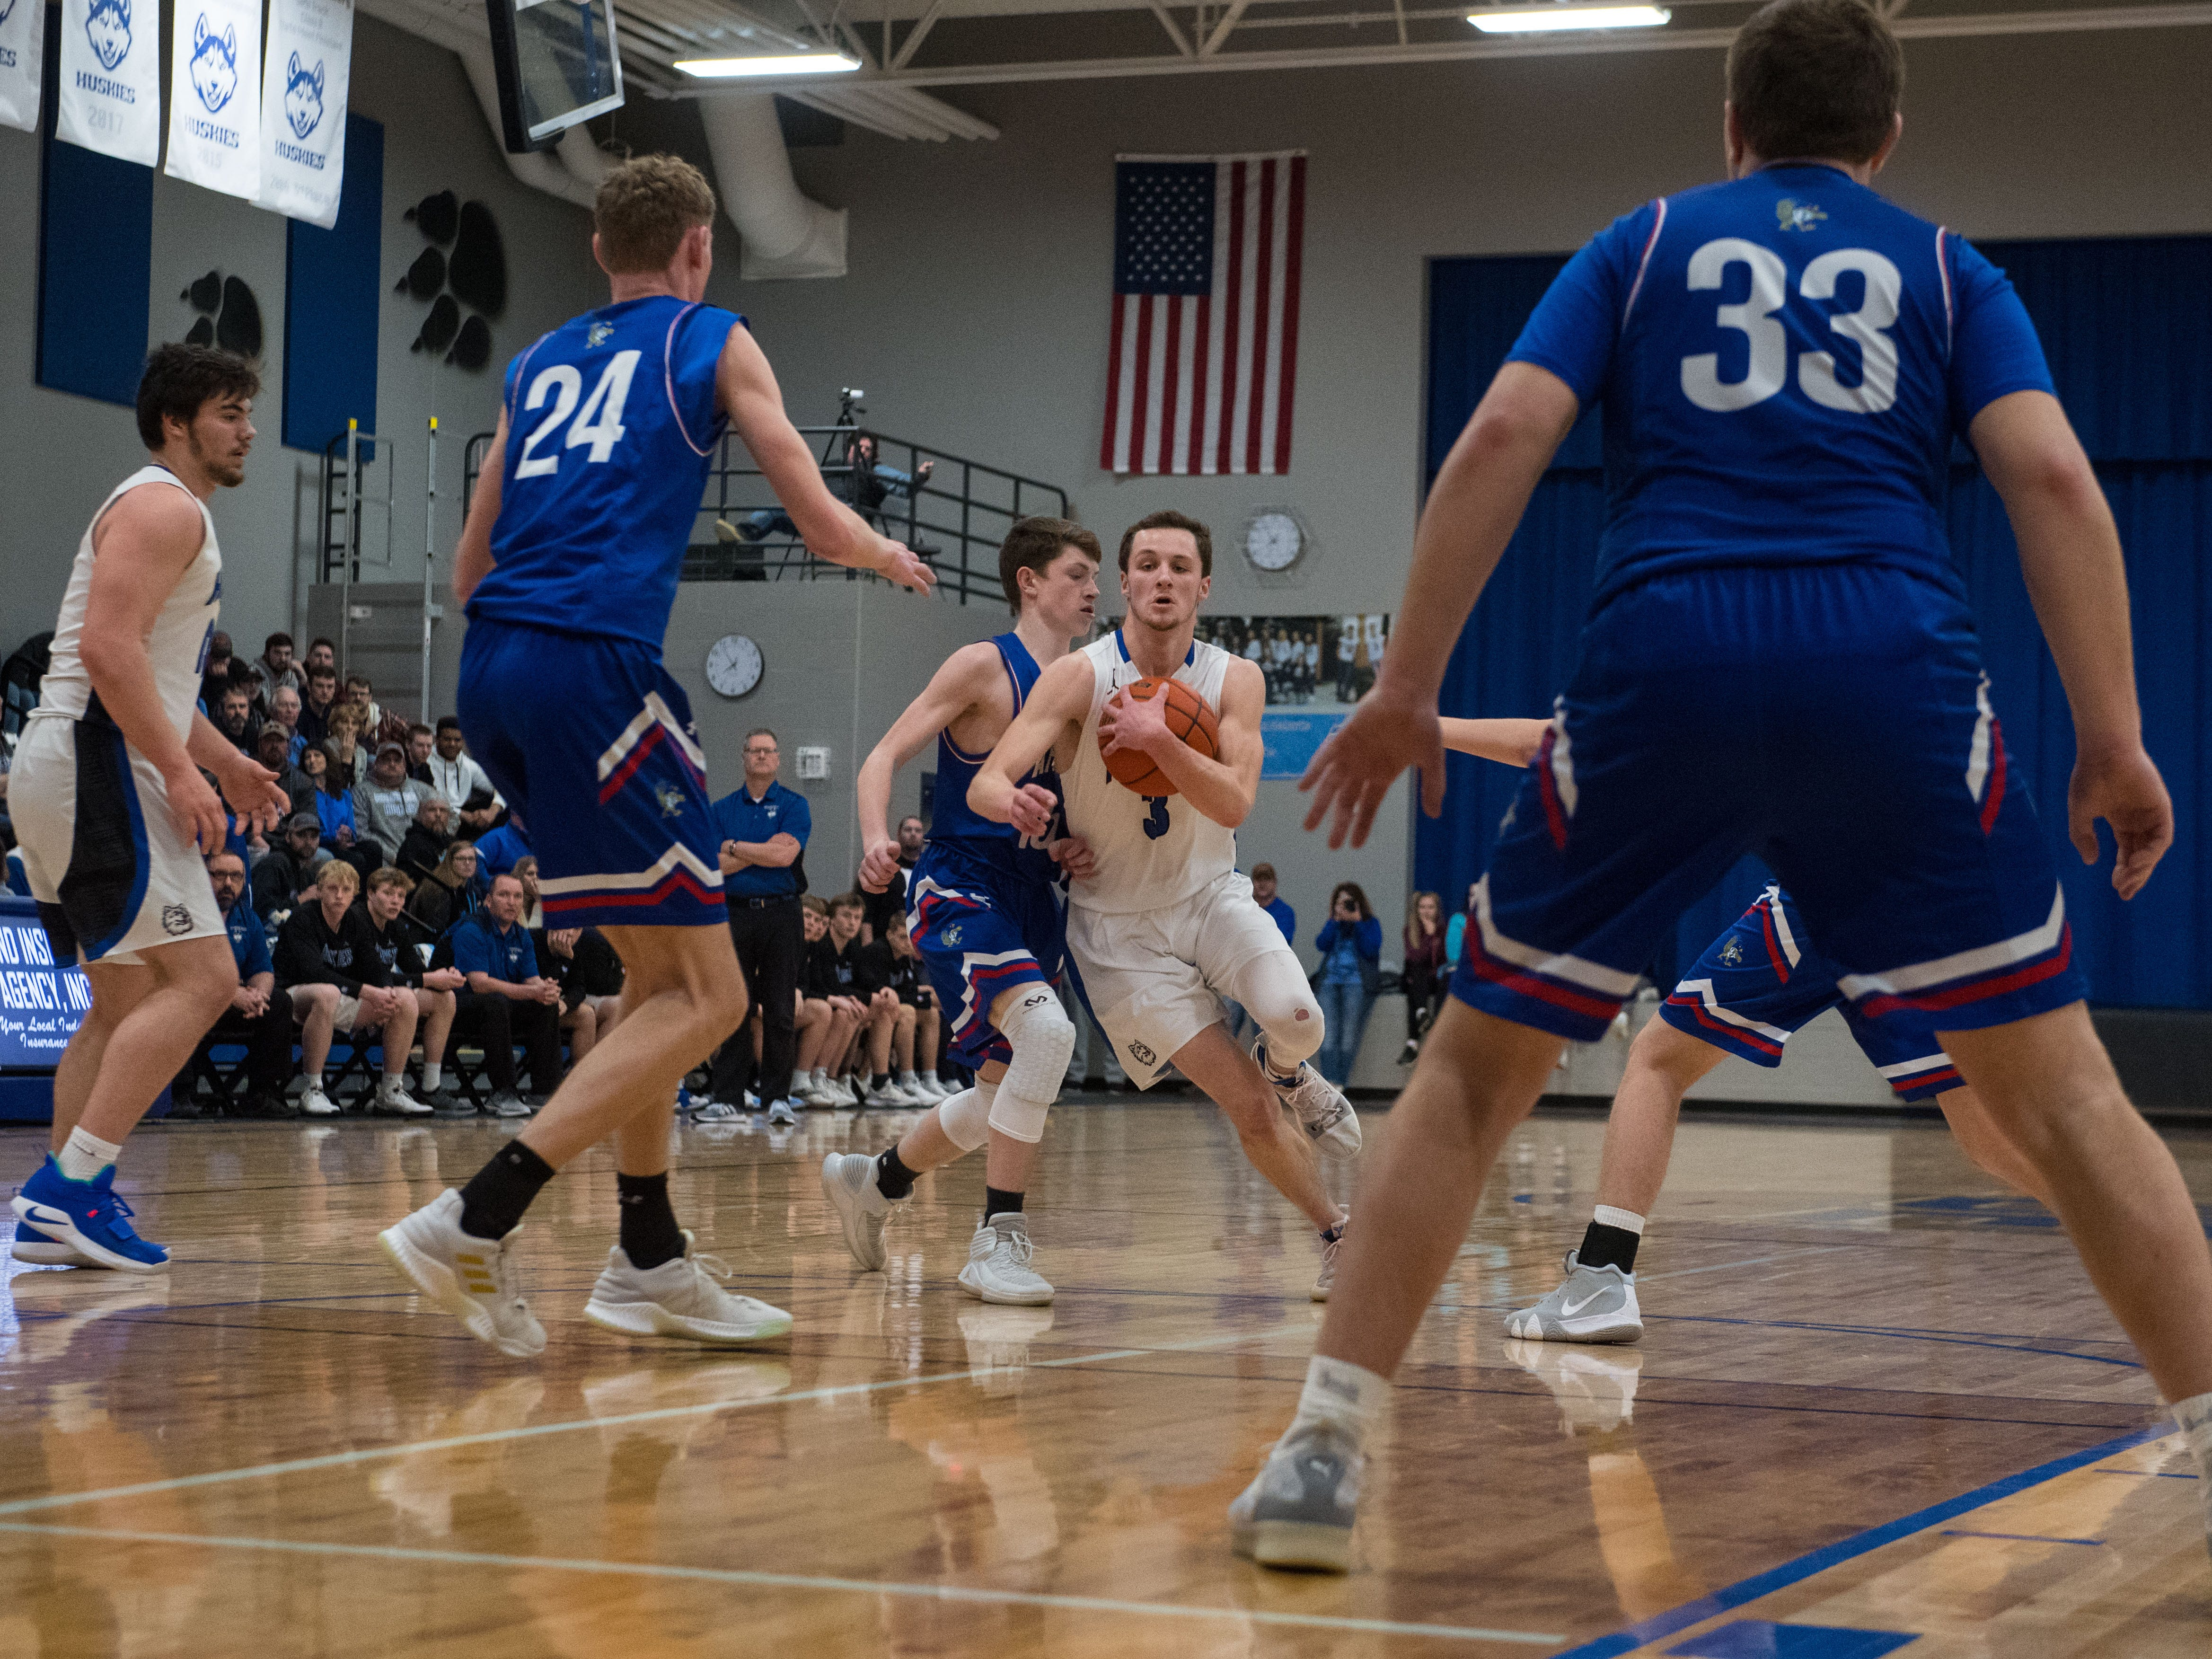 Bridgewater Emery's Sawyer Schultz (3) dribbles the ball past Parker players during a game in Emery, S.D., Friday, Feb. 15, 2019.